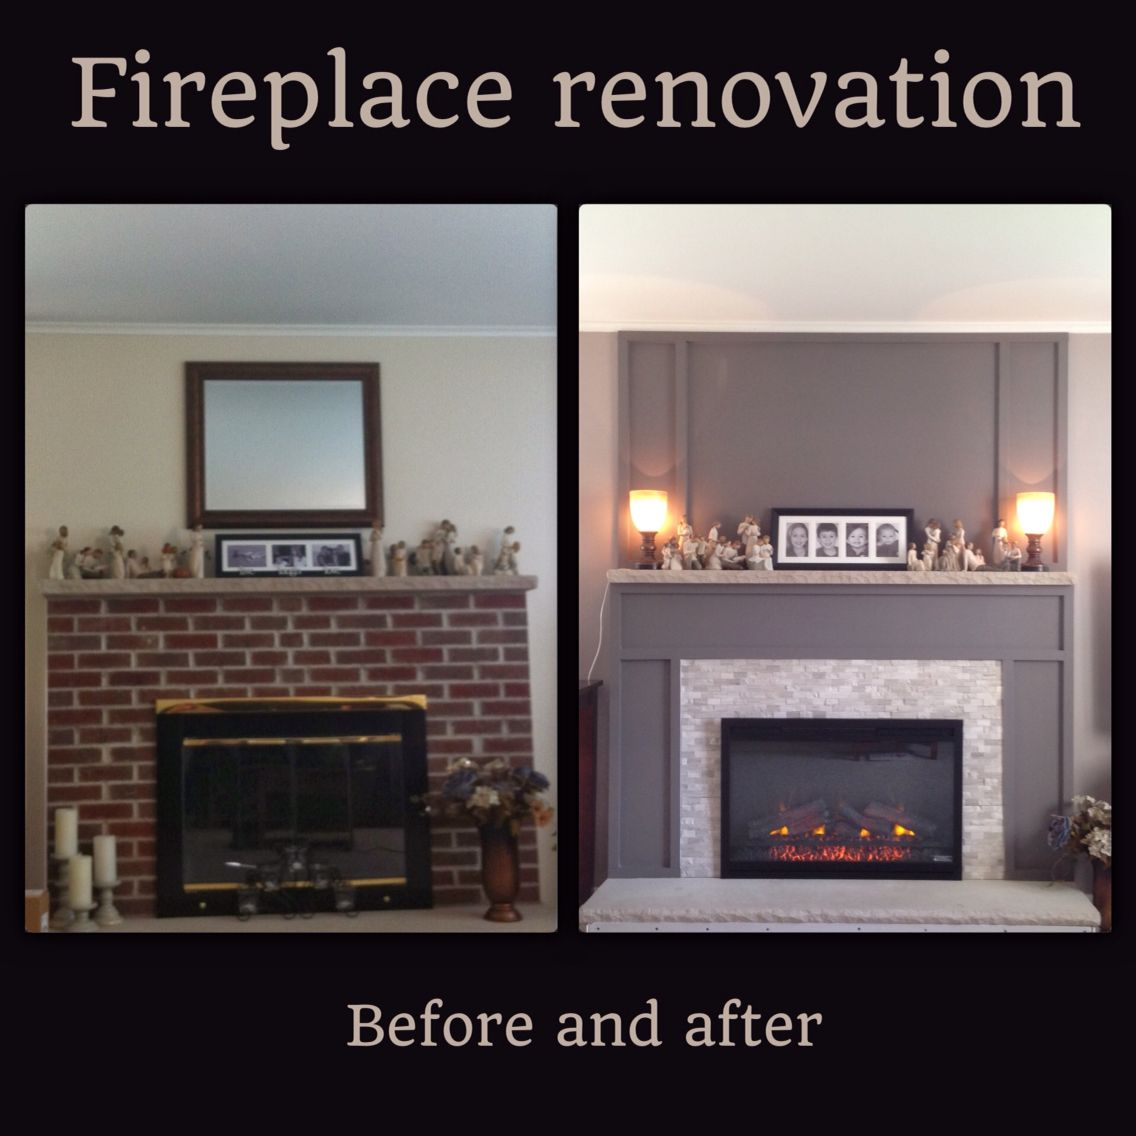 Cover Brick Fireplace With Wood Panels Brick Fireplace Renovation Cover Old Brick With Drywall